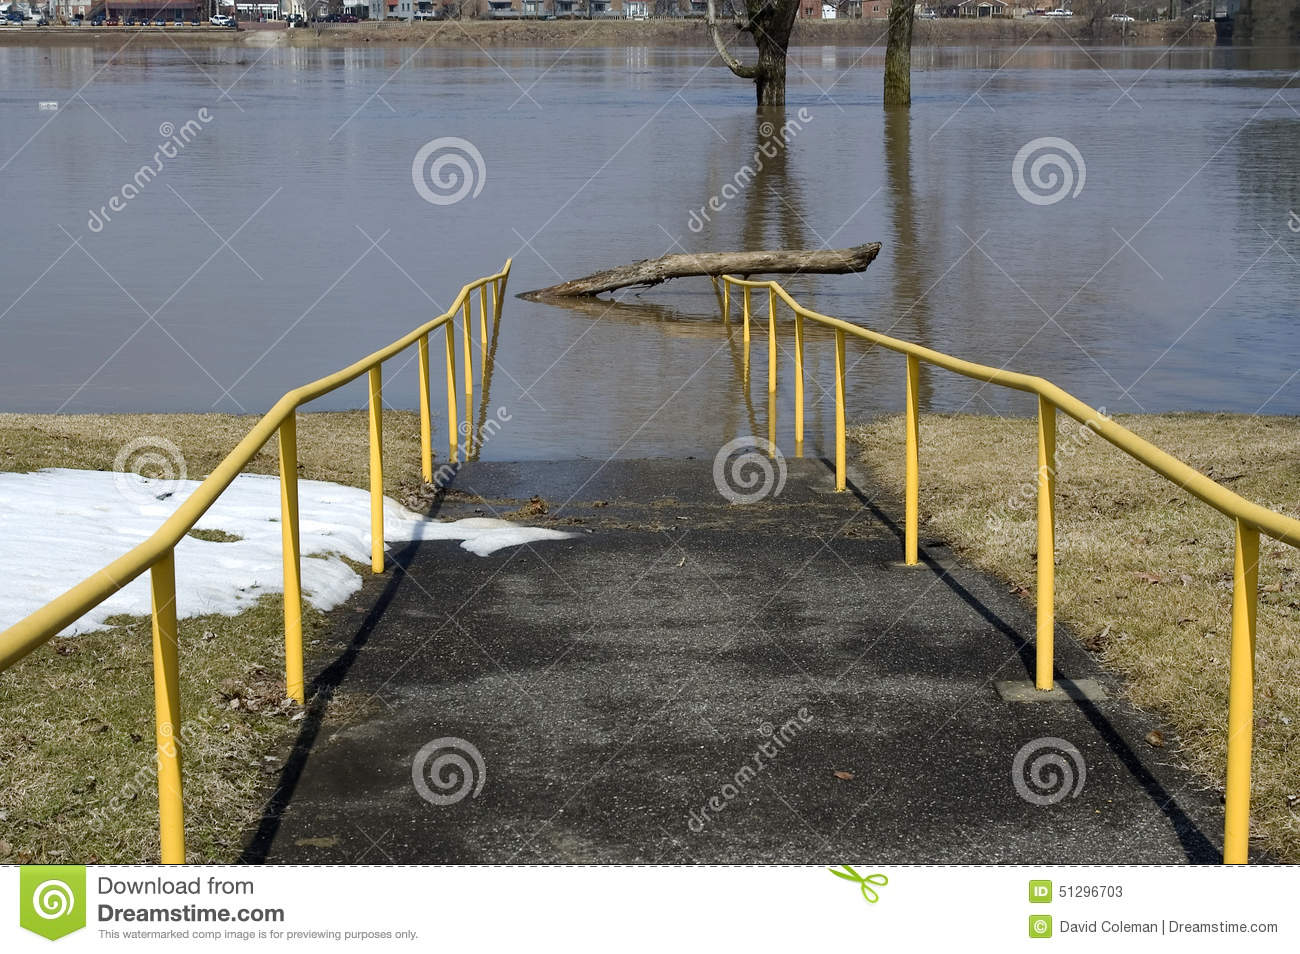 how to fix a walkway that floods